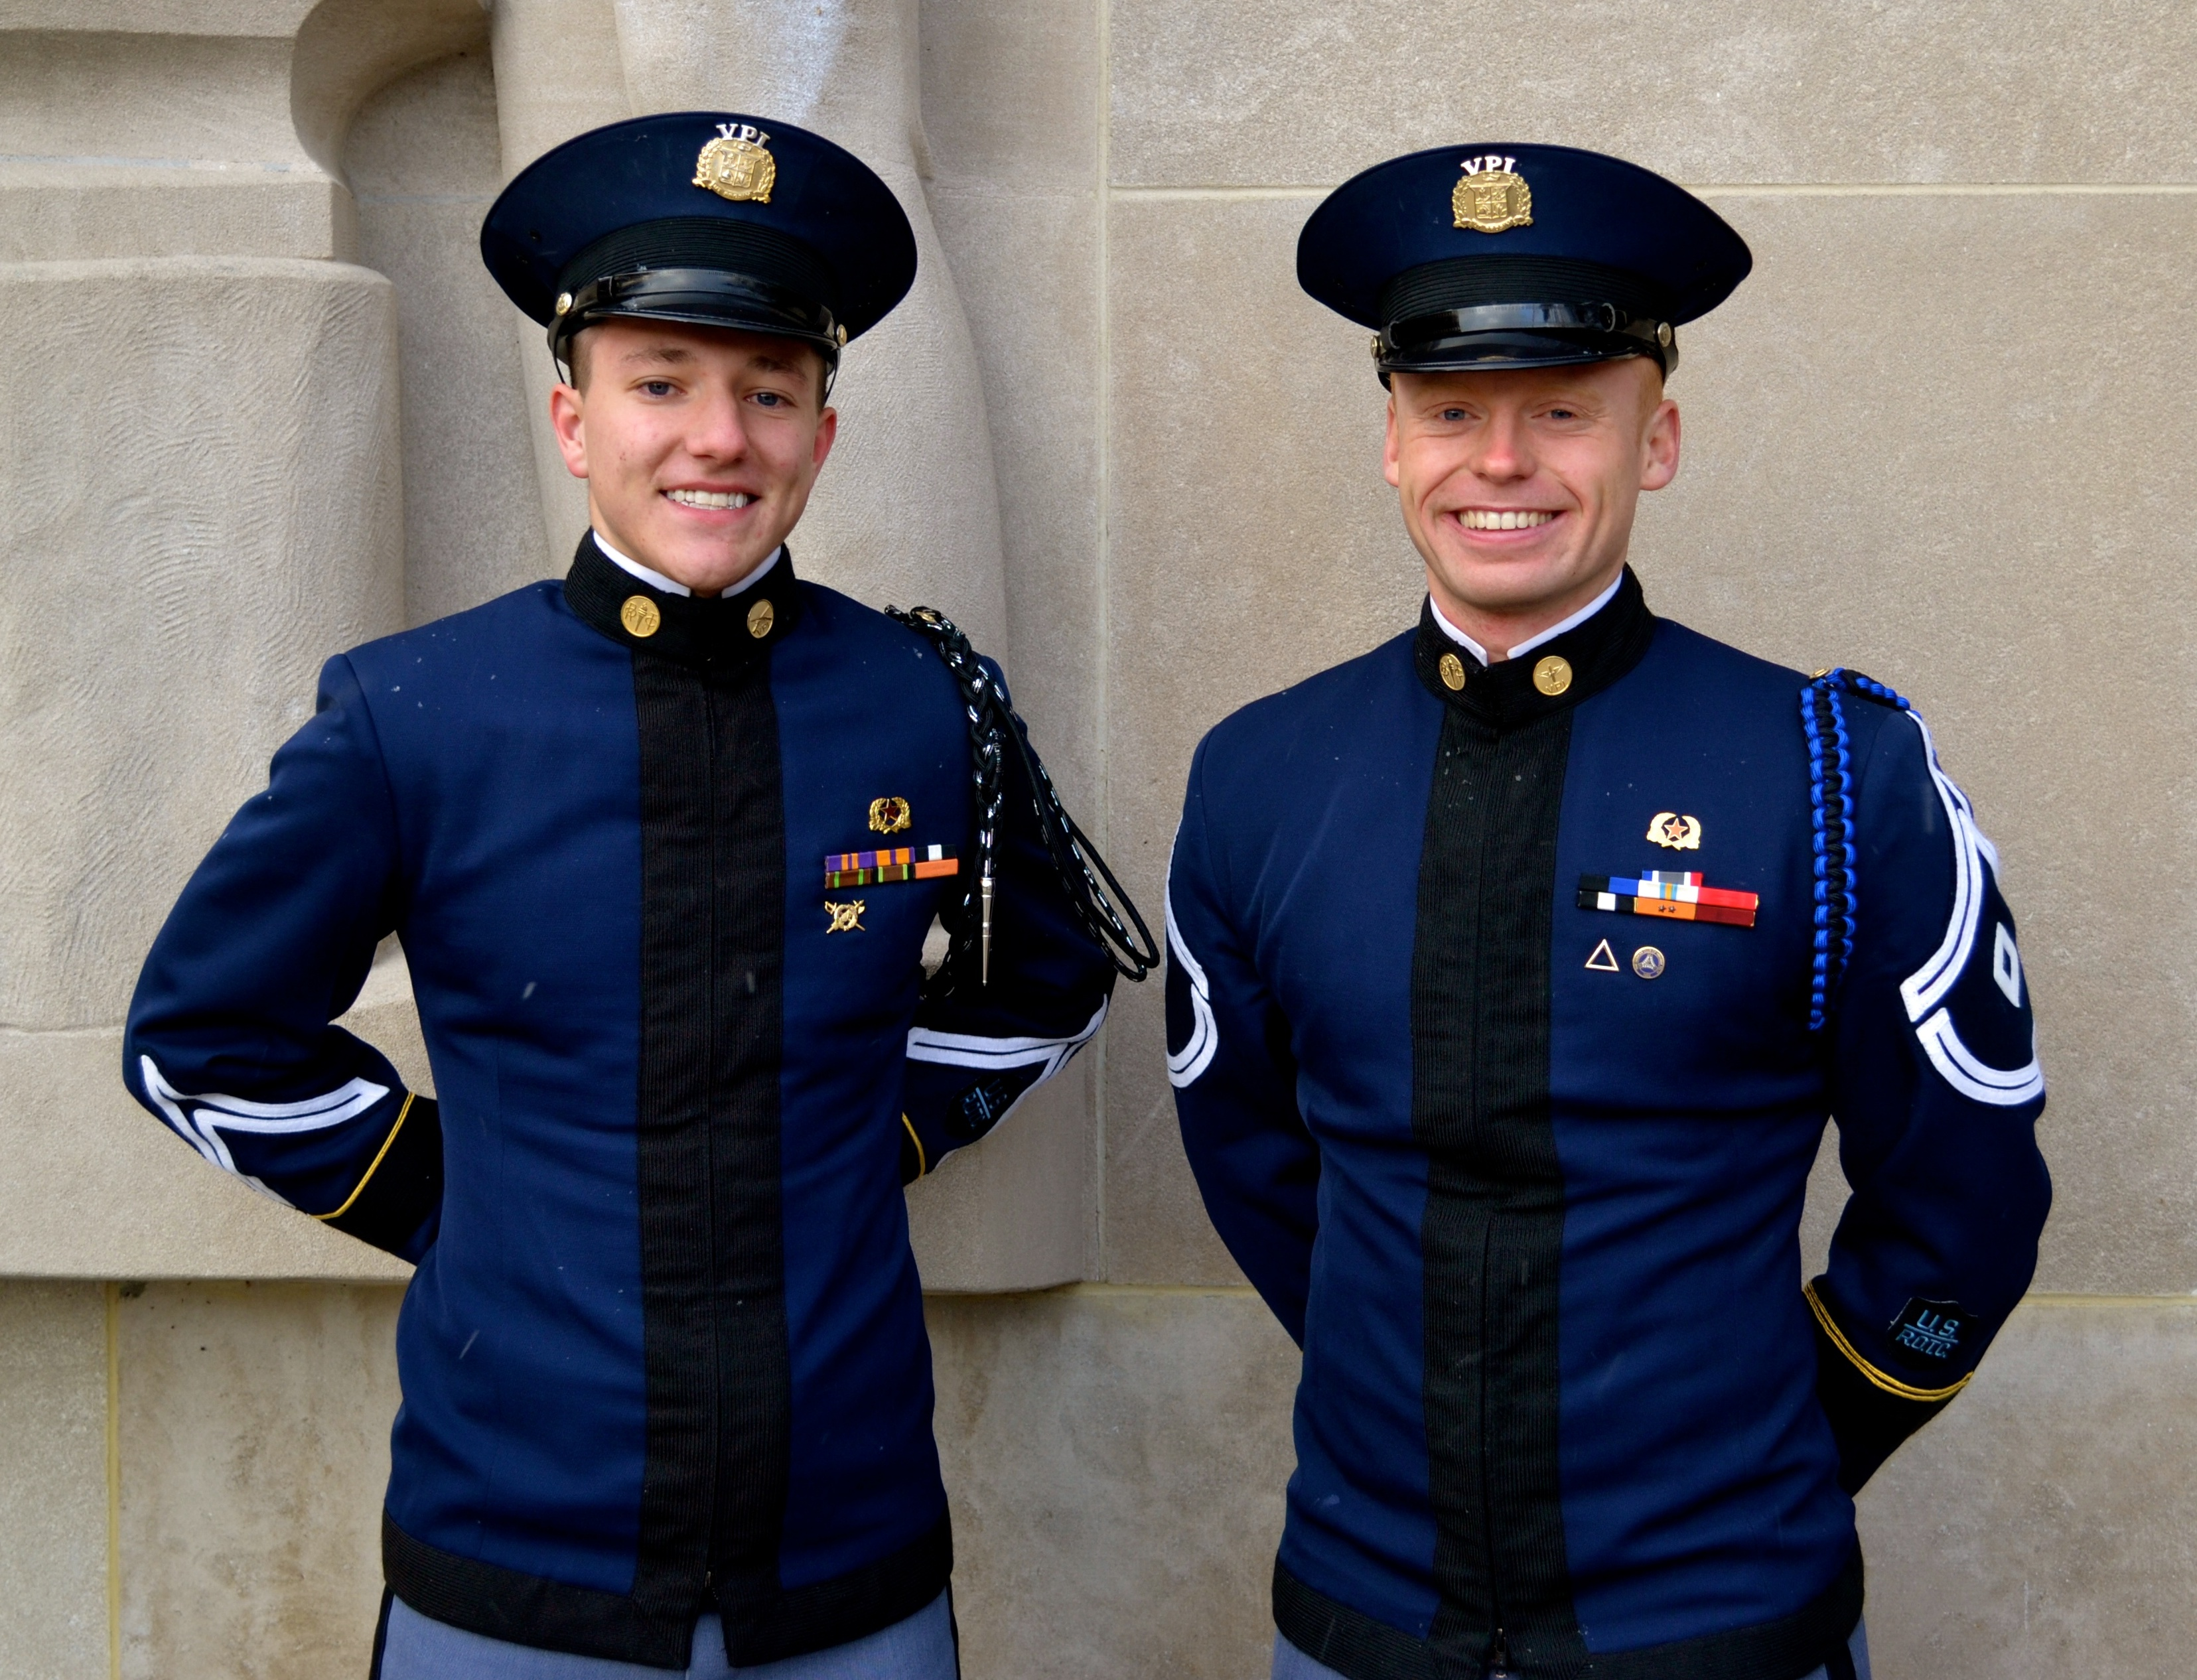 From left to right in front of the Pylons are Cadet Hunter Garth and Cadet Garrett Treaster.